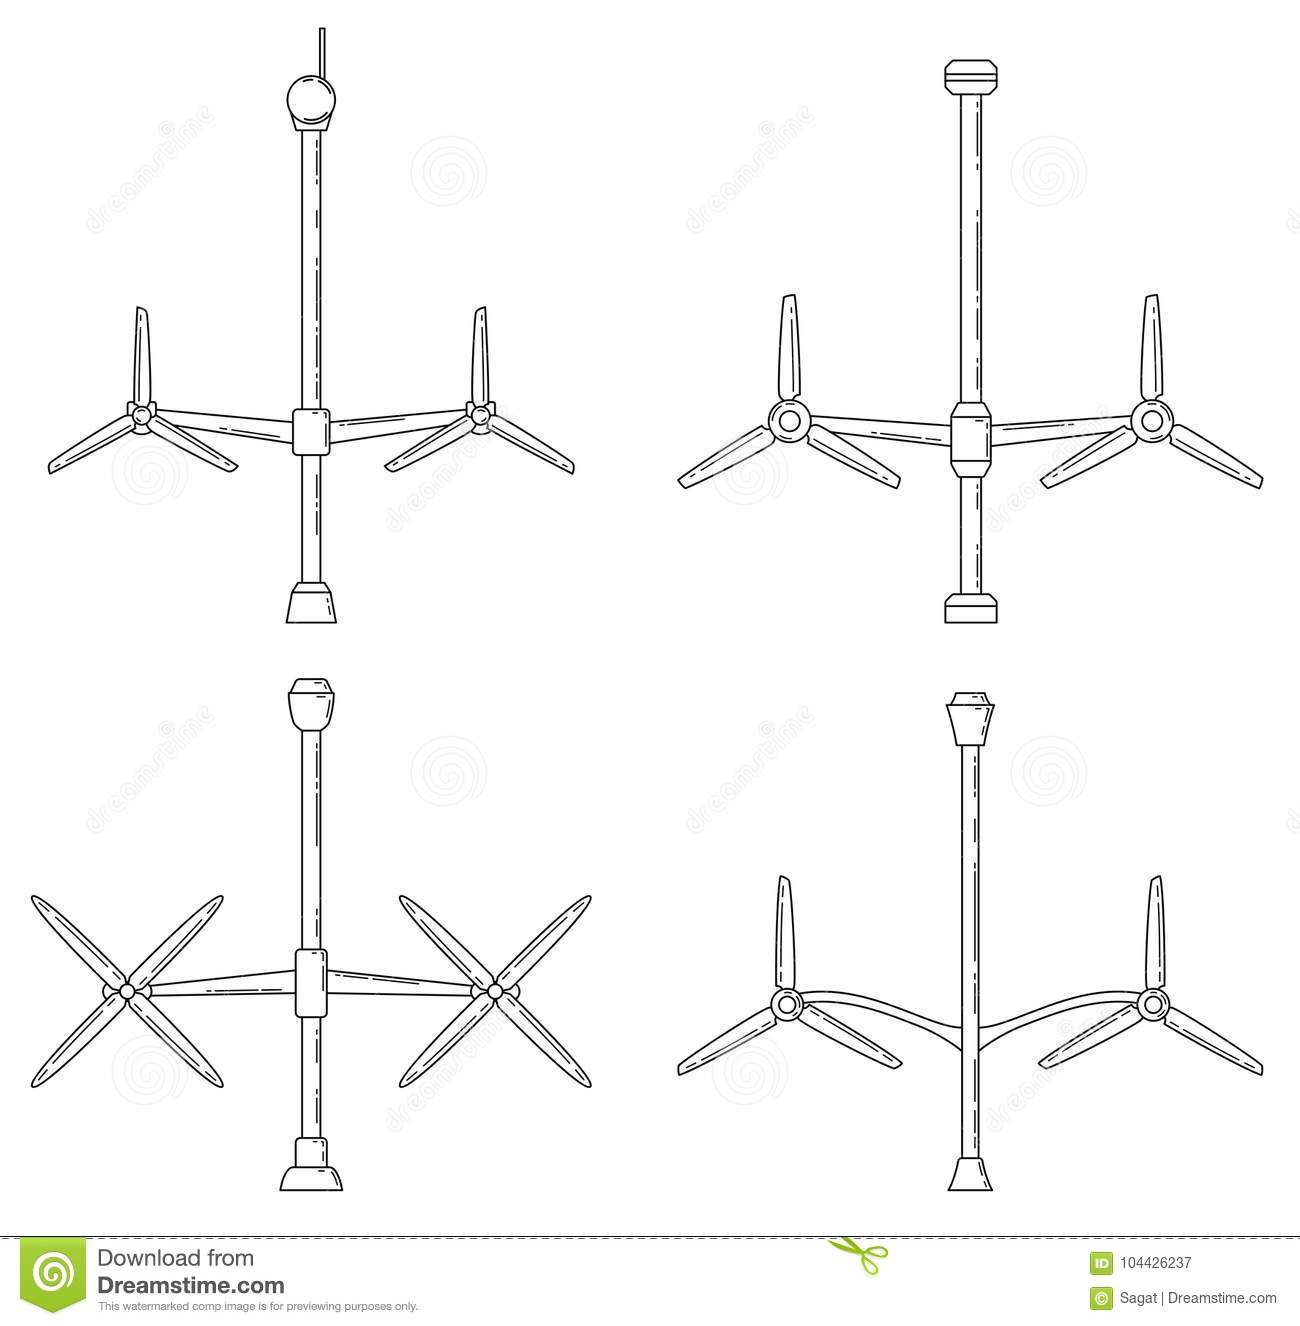 hight resolution of download set of different tidal power station rotters stock vector illustration of flat